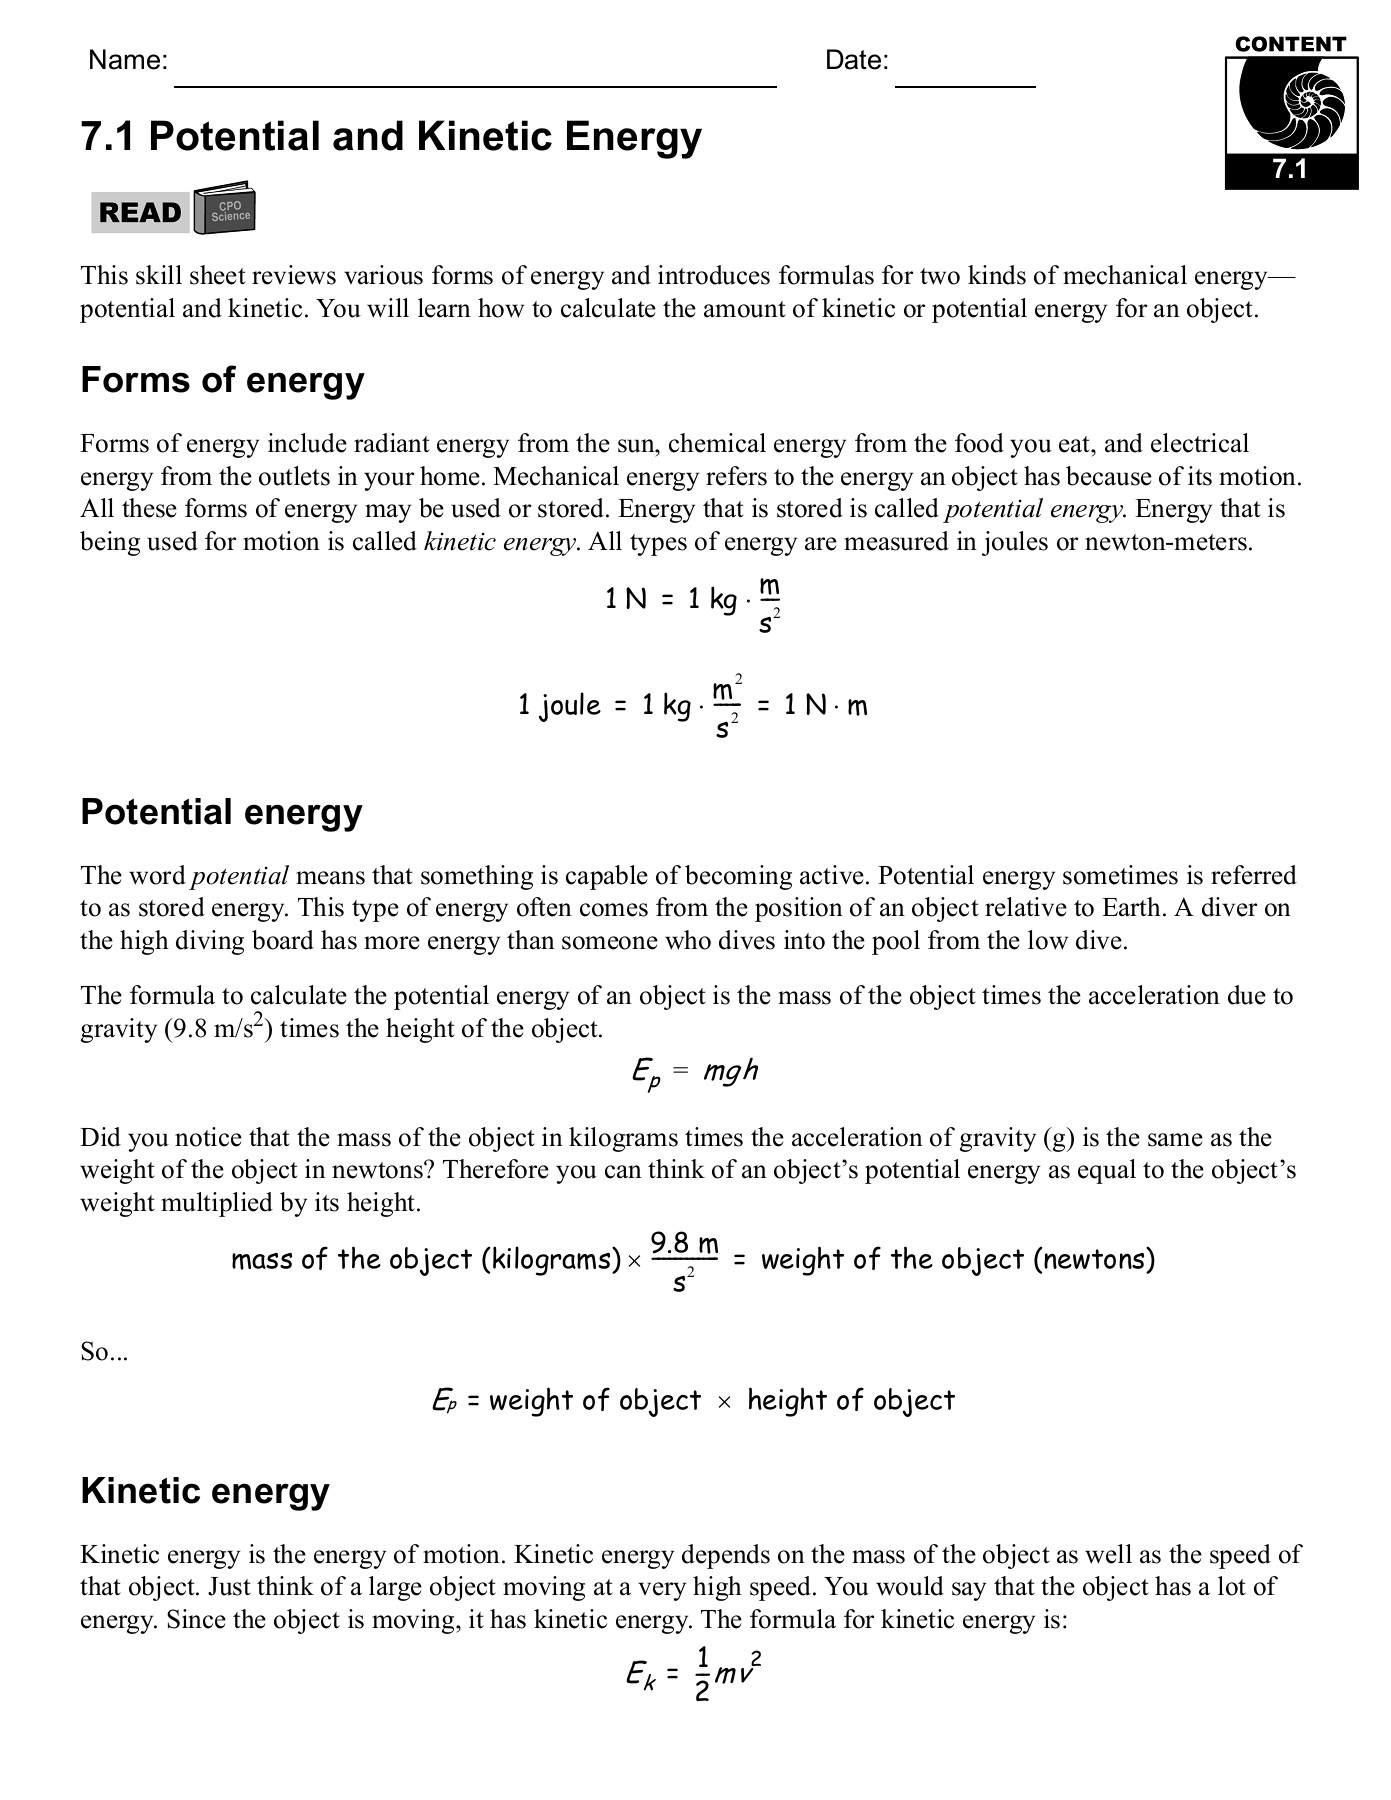 7.1 Potential and Kinetic Energy - CPO Science